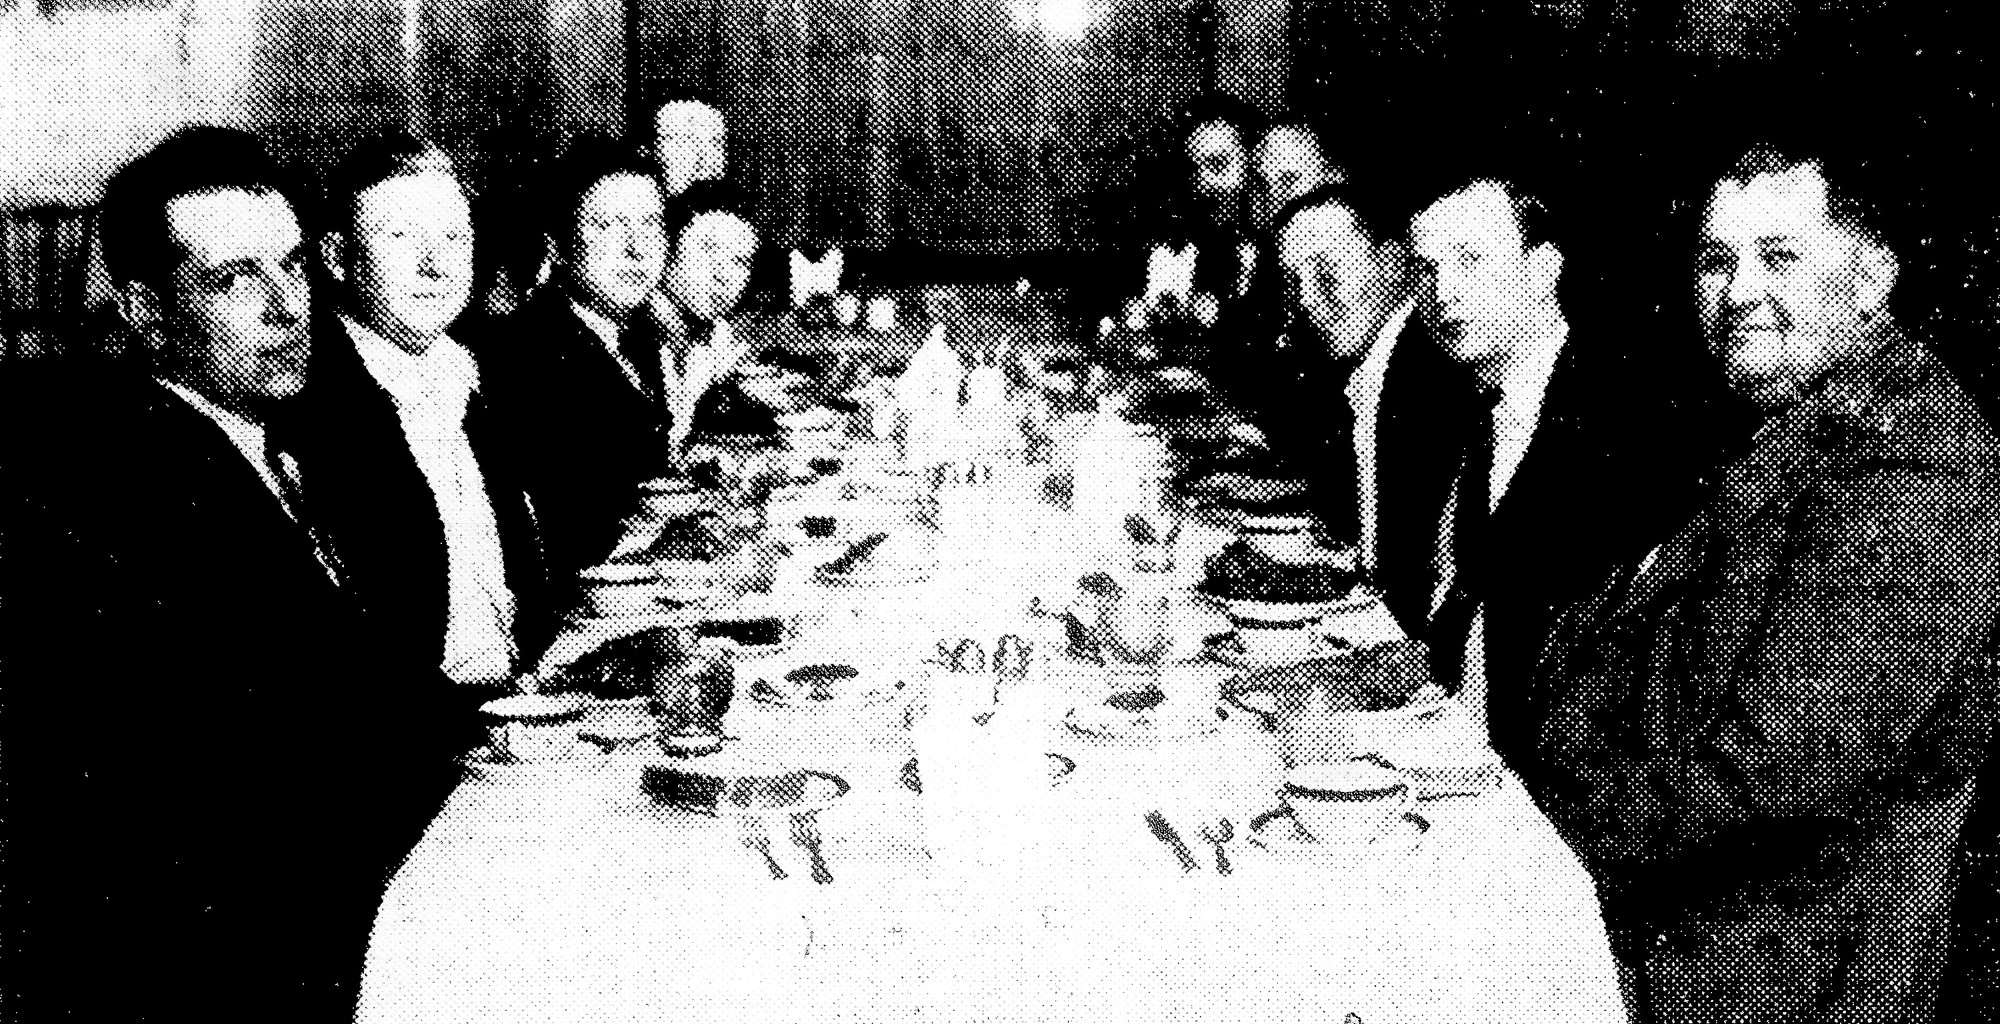 The employees of Keith's Garage and invited guests were treated to a chicken dinner at Julian's in 1941.